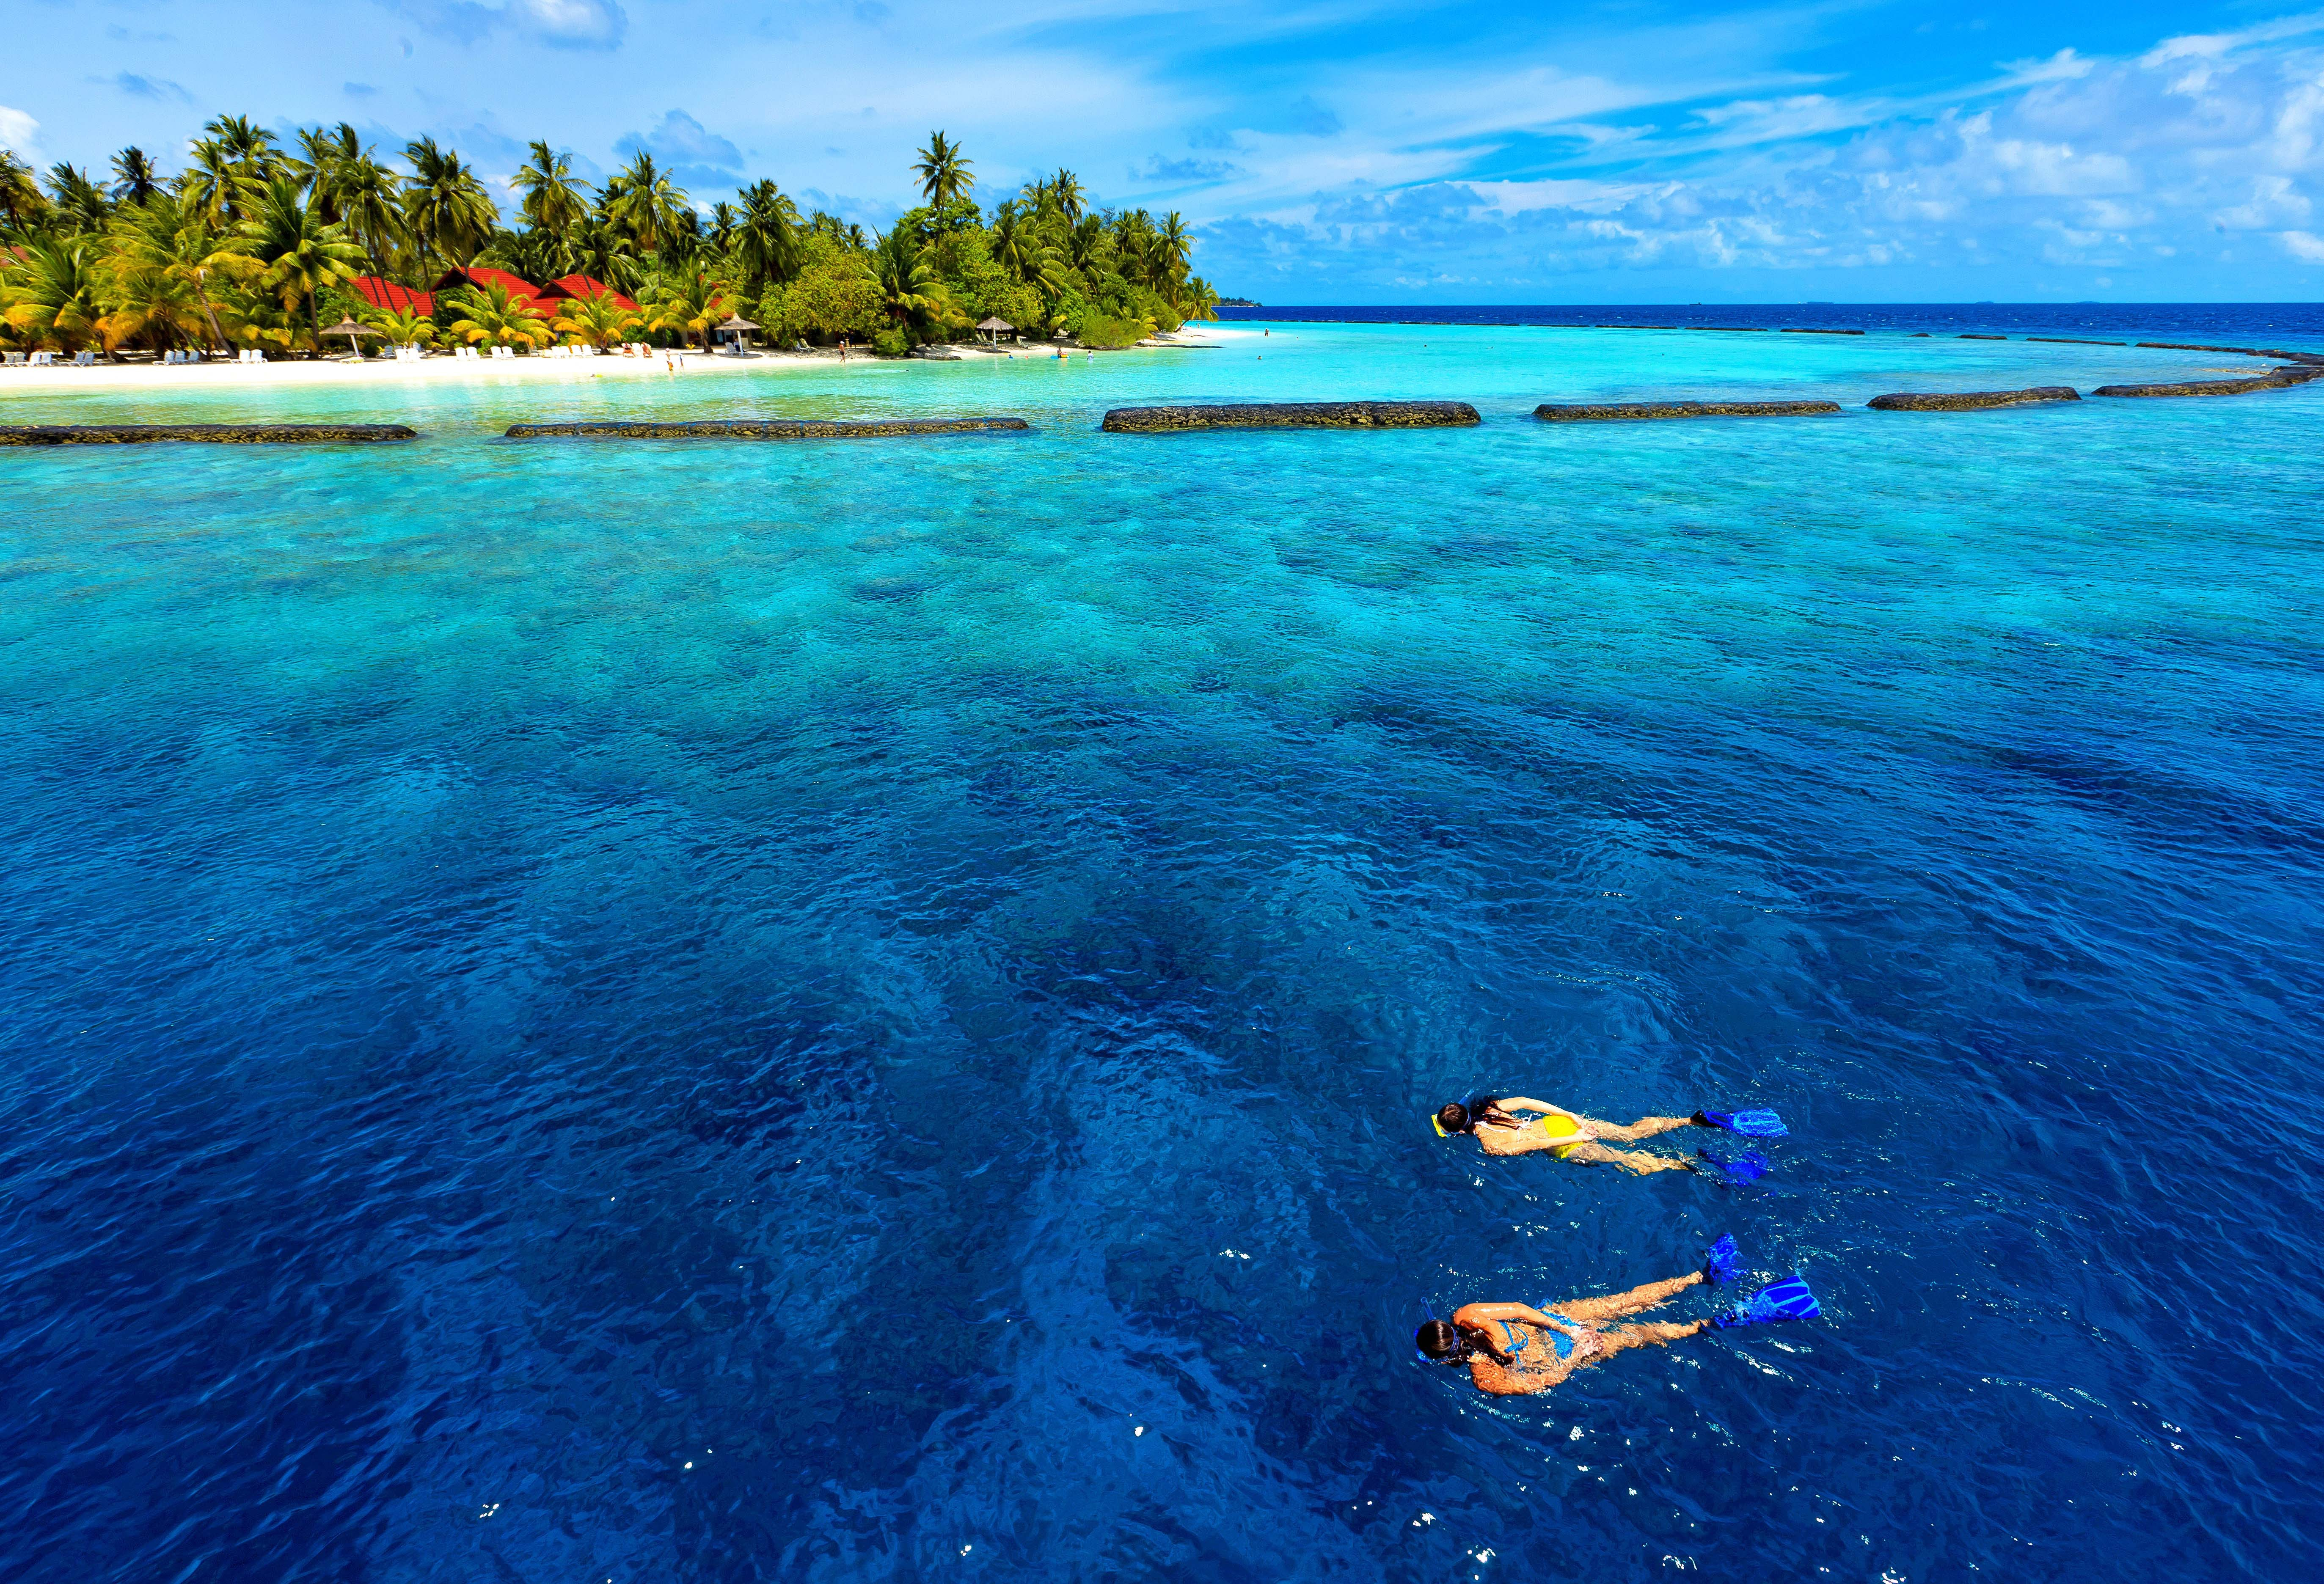 Wallpaper baros maldives male attols best hotels of 2017 - Best laptop wallpapers 2017 ...